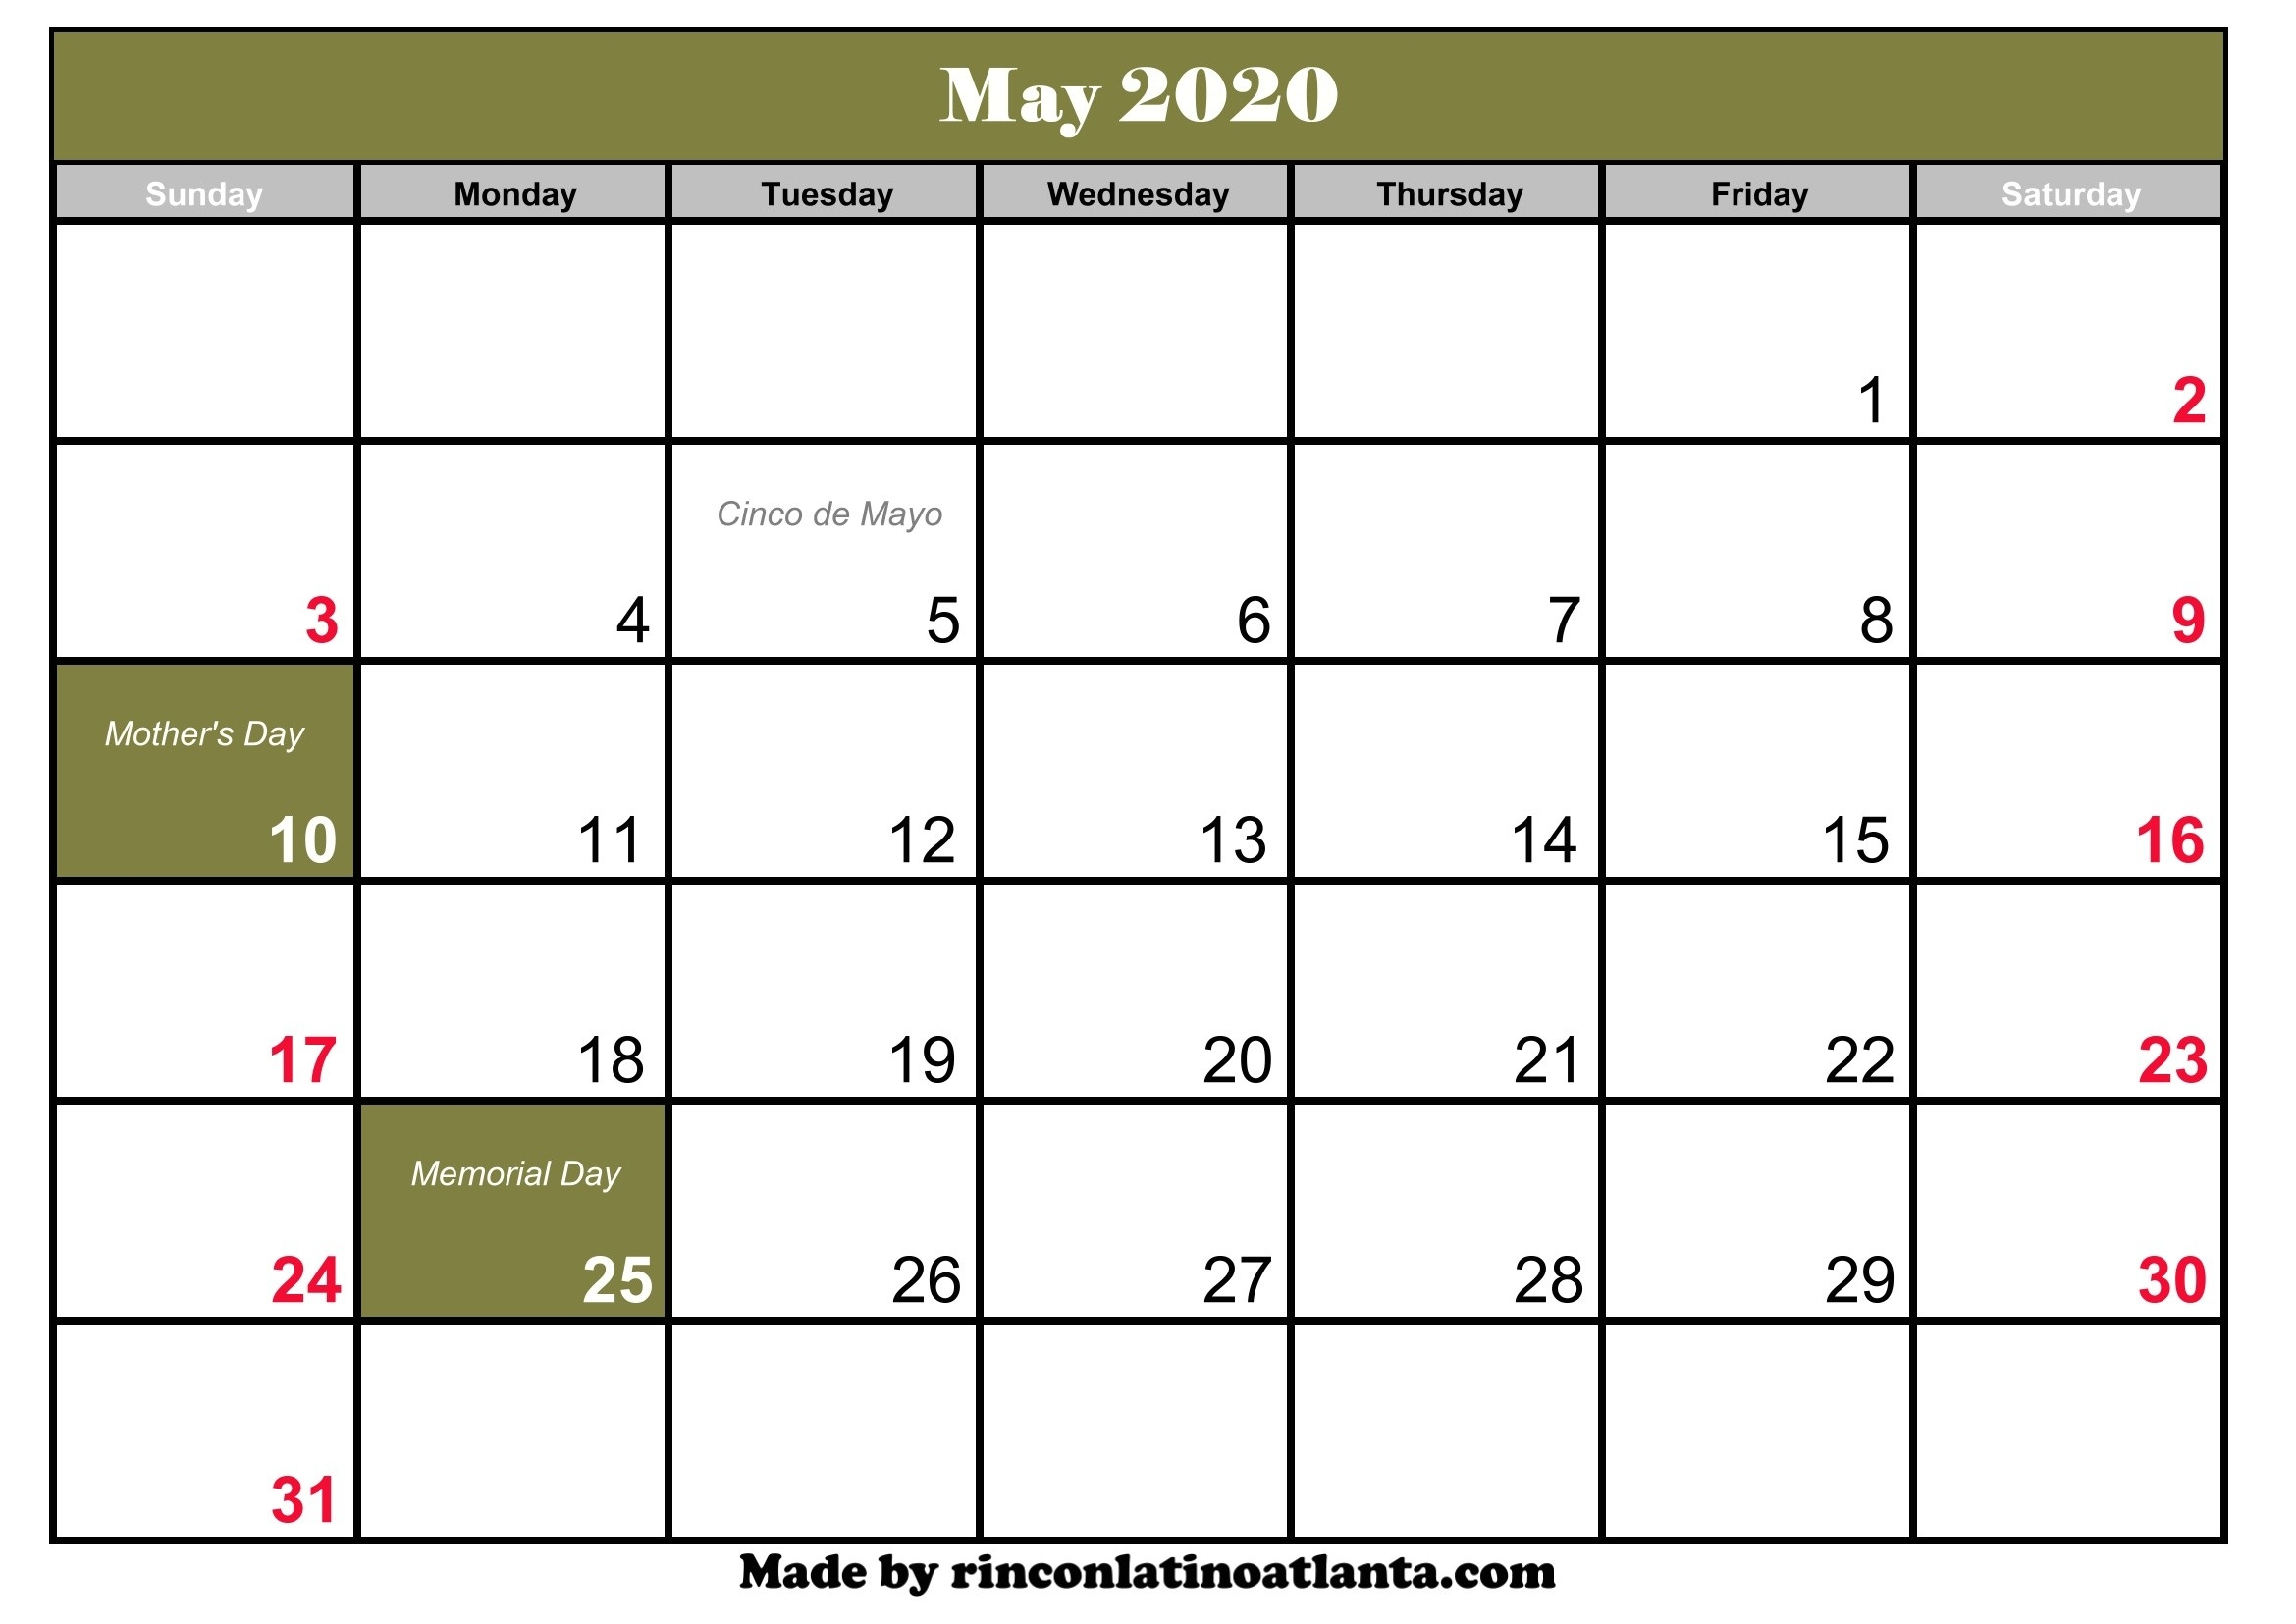 May 2020 Calendar With Holiday | Calendar Template Printable-2020 May All Holidays